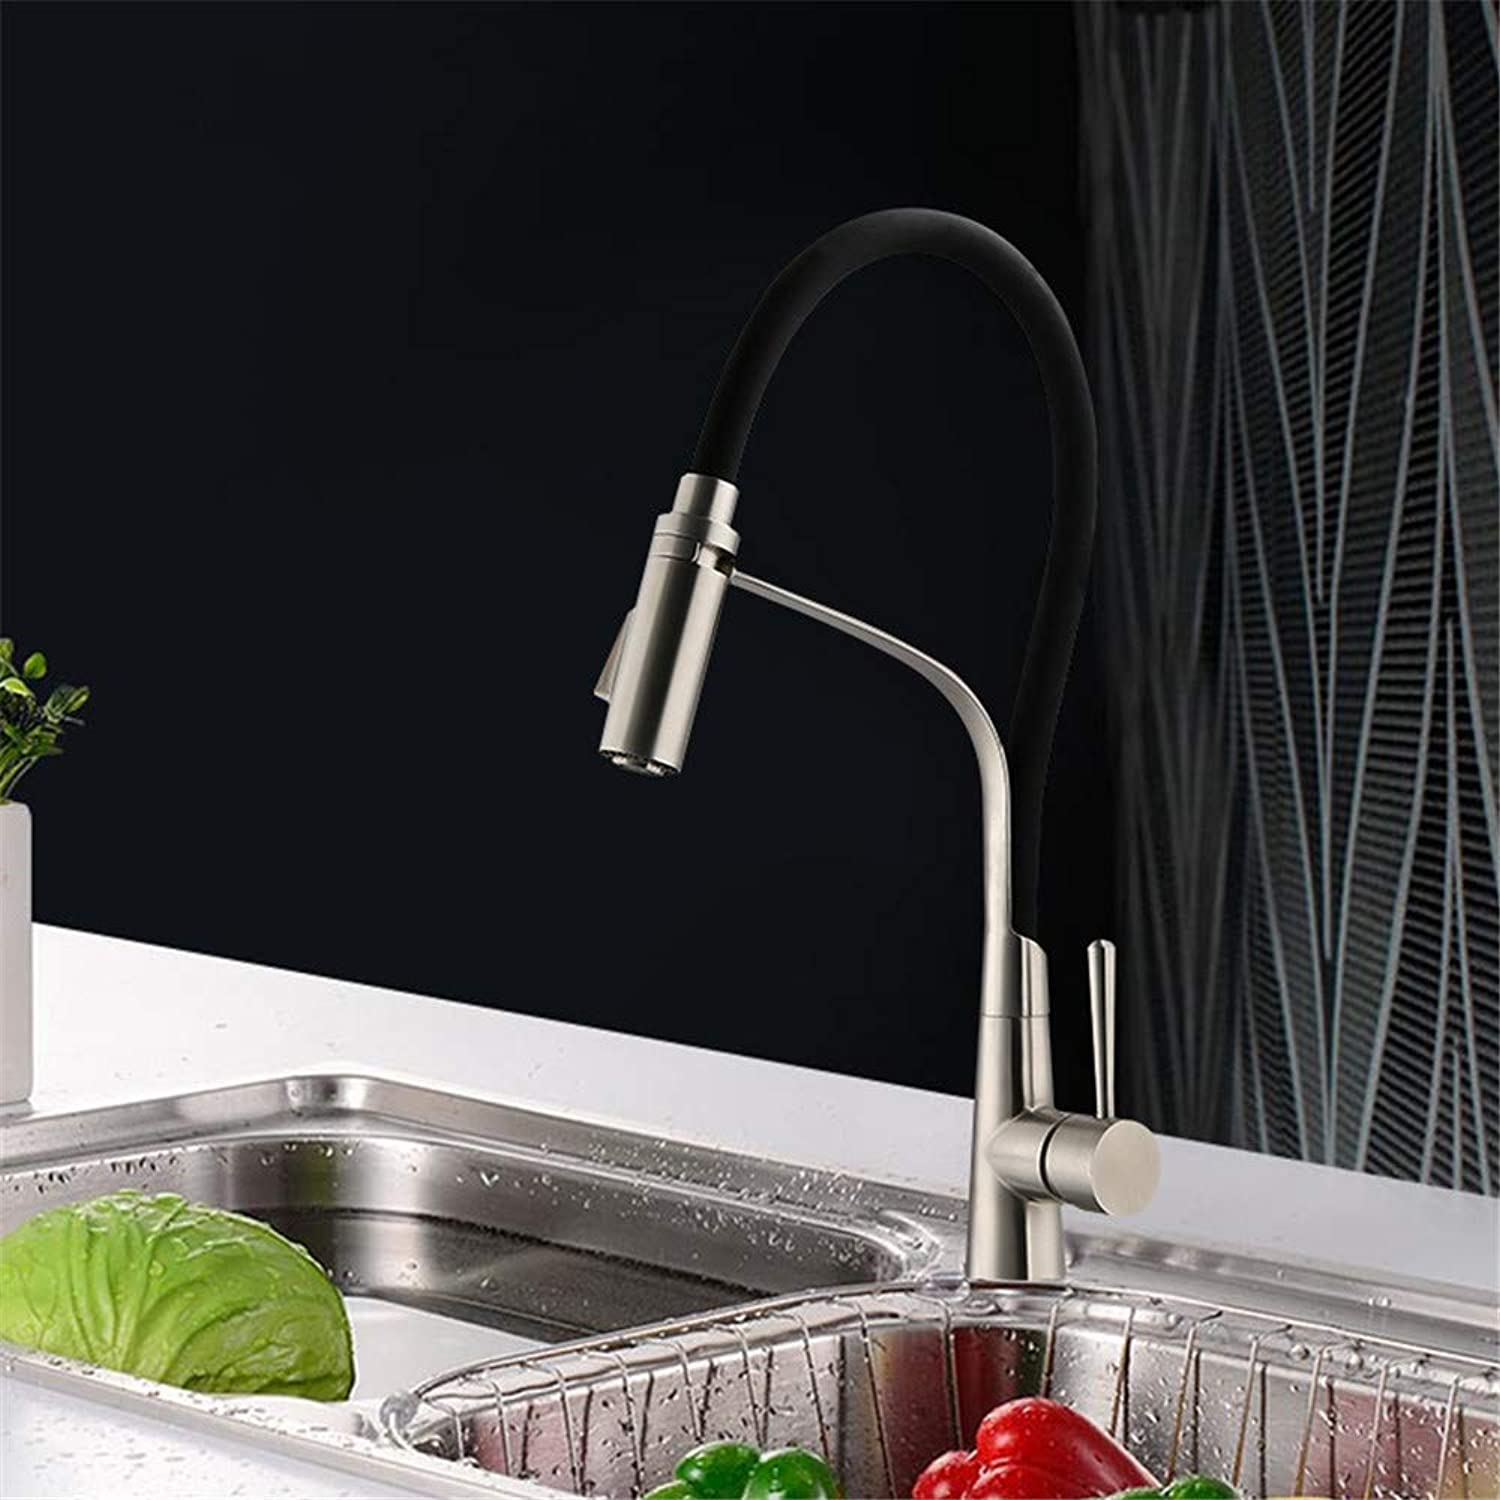 Decorry Kitchen Vegetables Dish Bathroom Faucet Stainless Steel Faucet